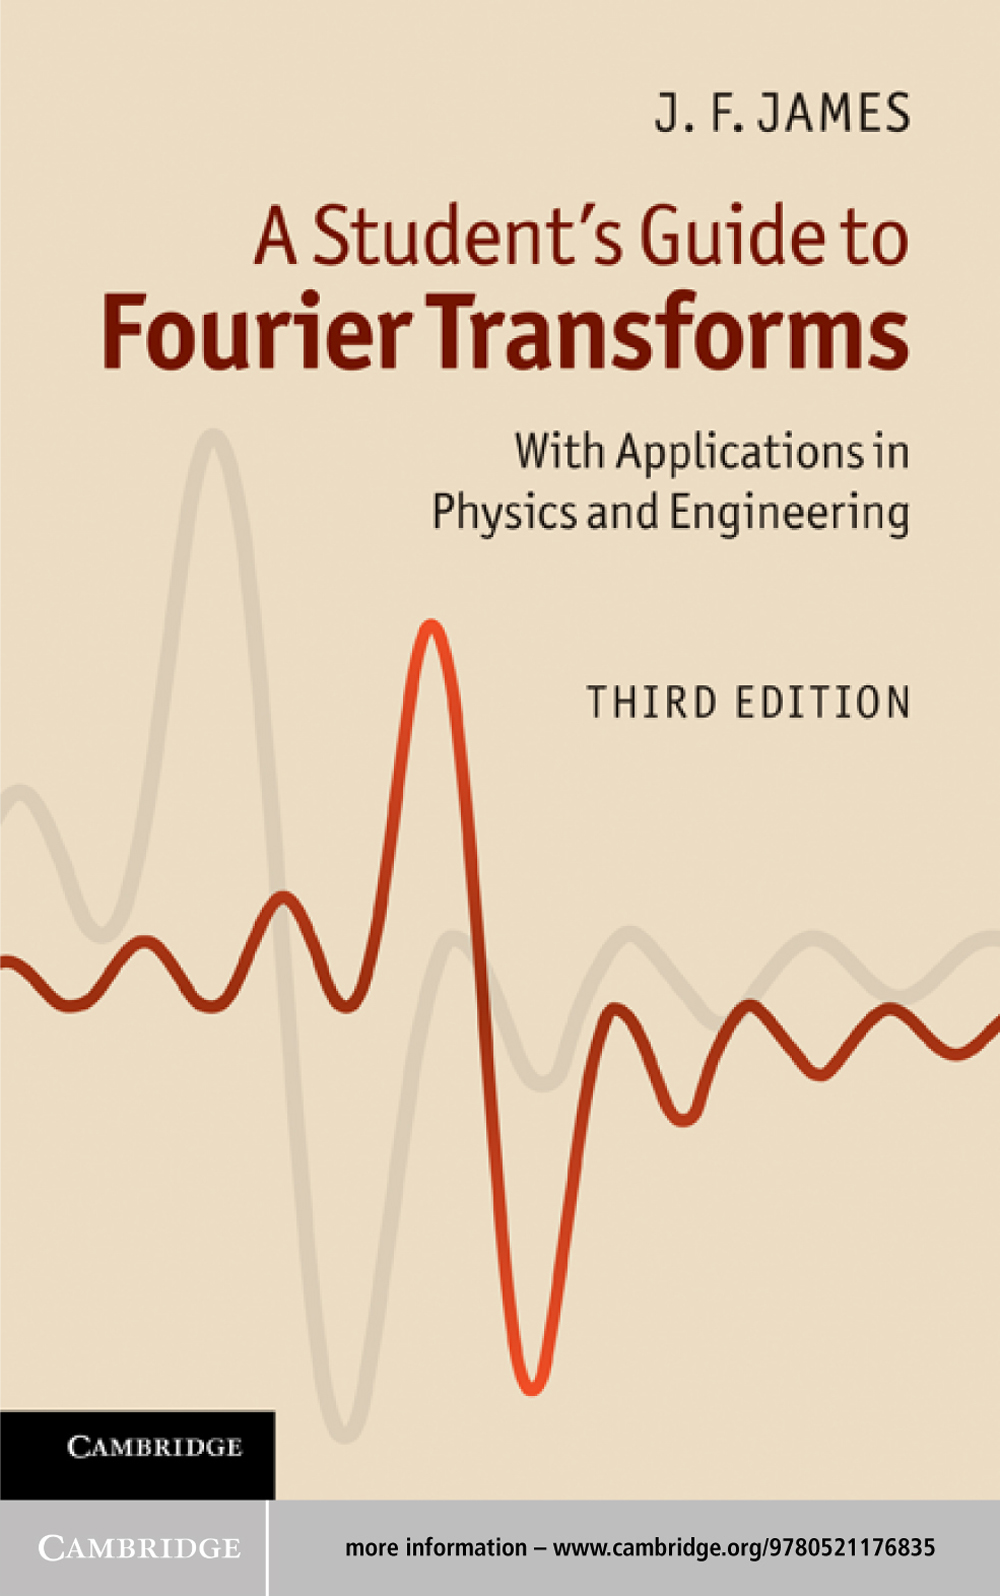 A Student's Guide to Fourier Transforms With Applications in Physics and Engineering